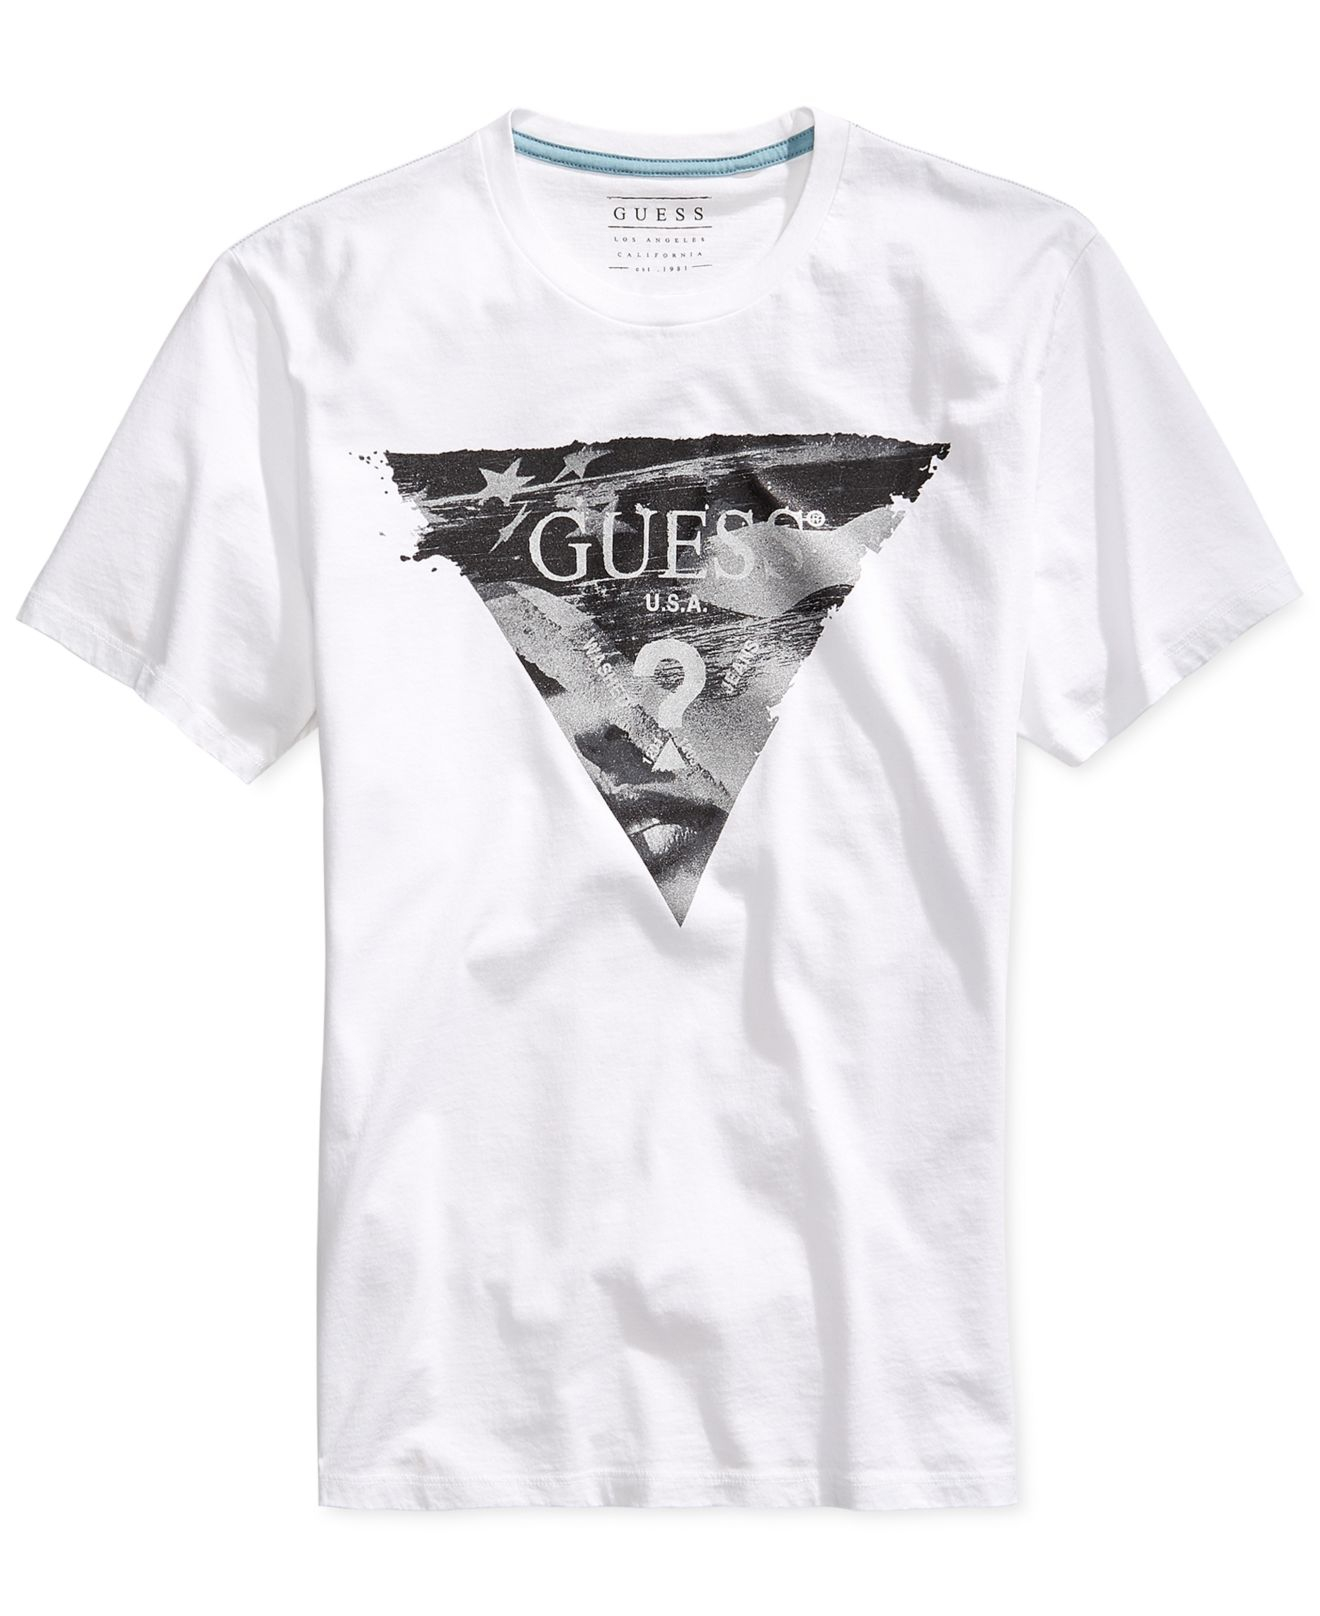 f00fc6142 Lyst - Guess America Logo T-shirt in White for Men